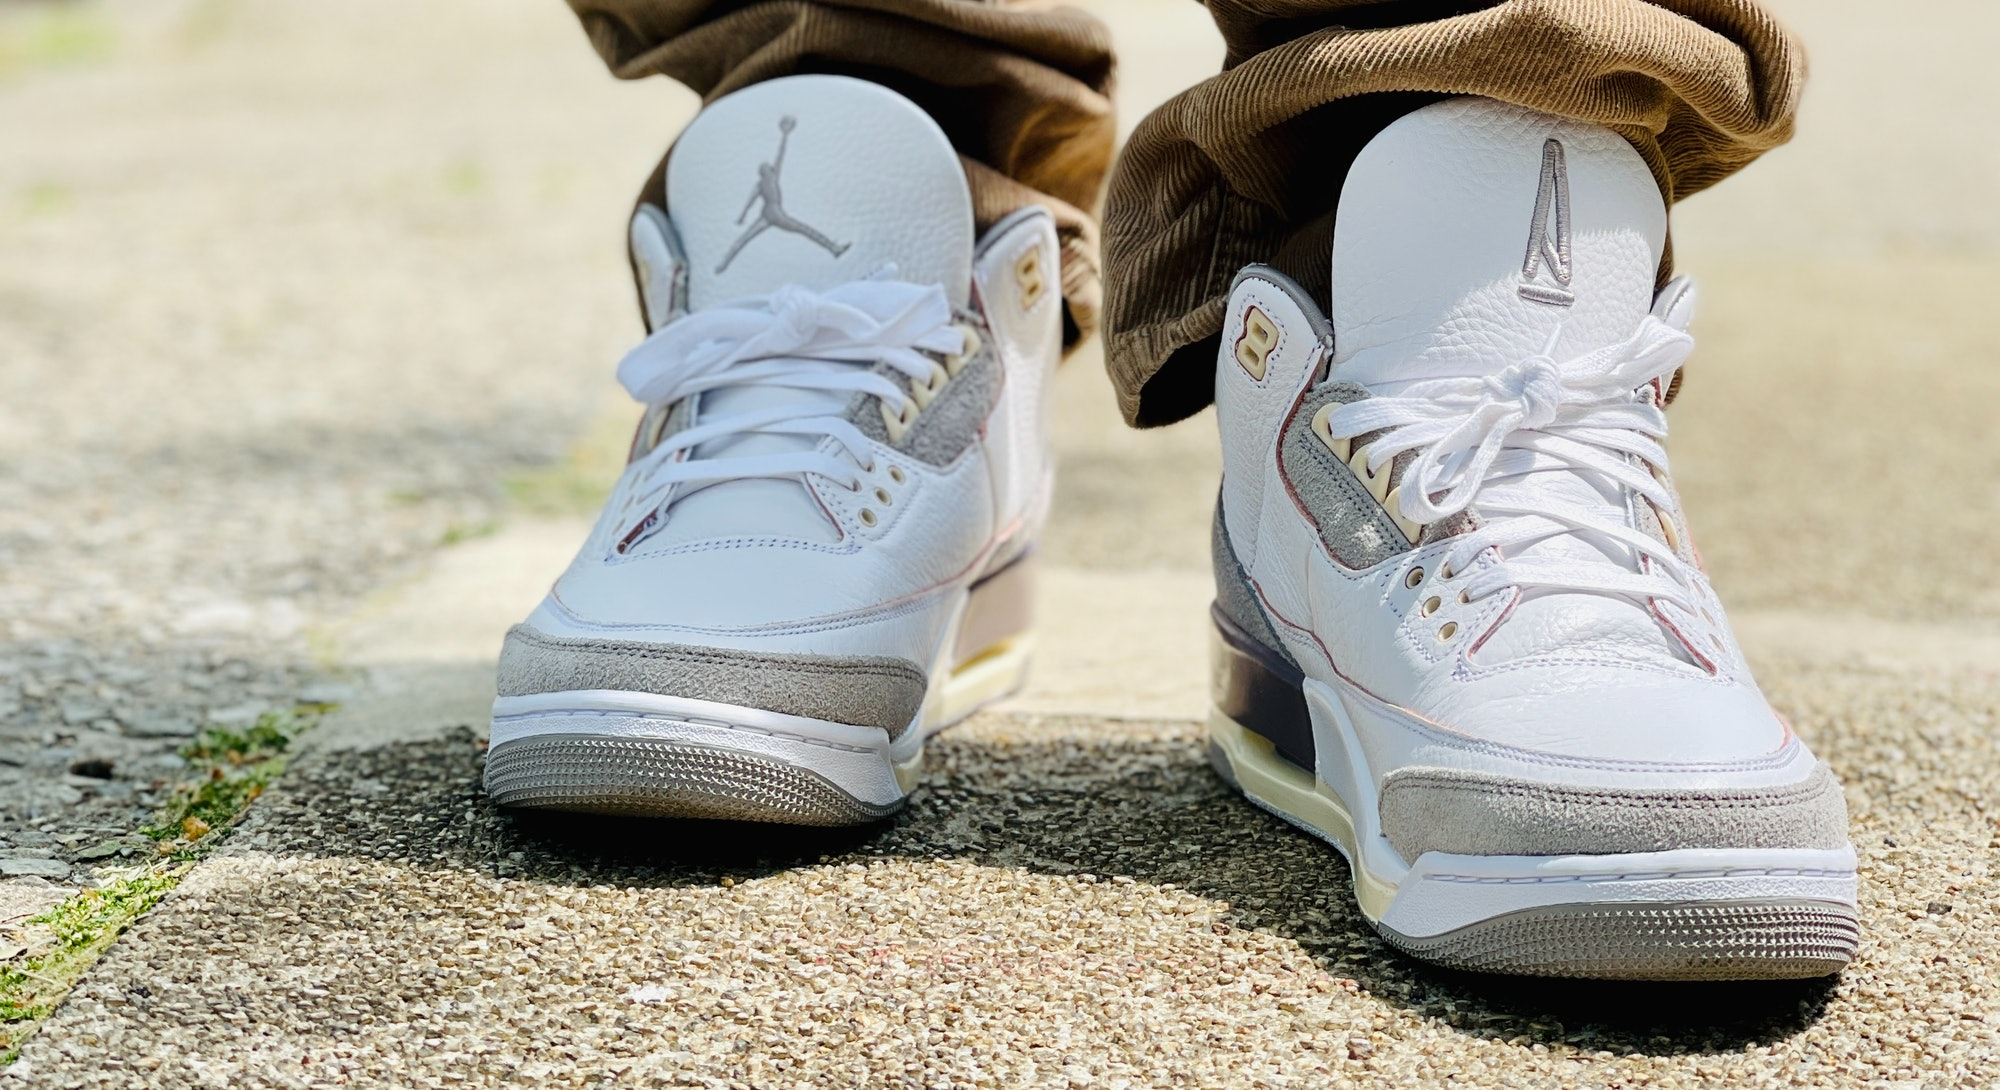 Nike Air Jordan 3 A Ma Maniére on feet review. Style. Shoes. Sneakers. Fashion.